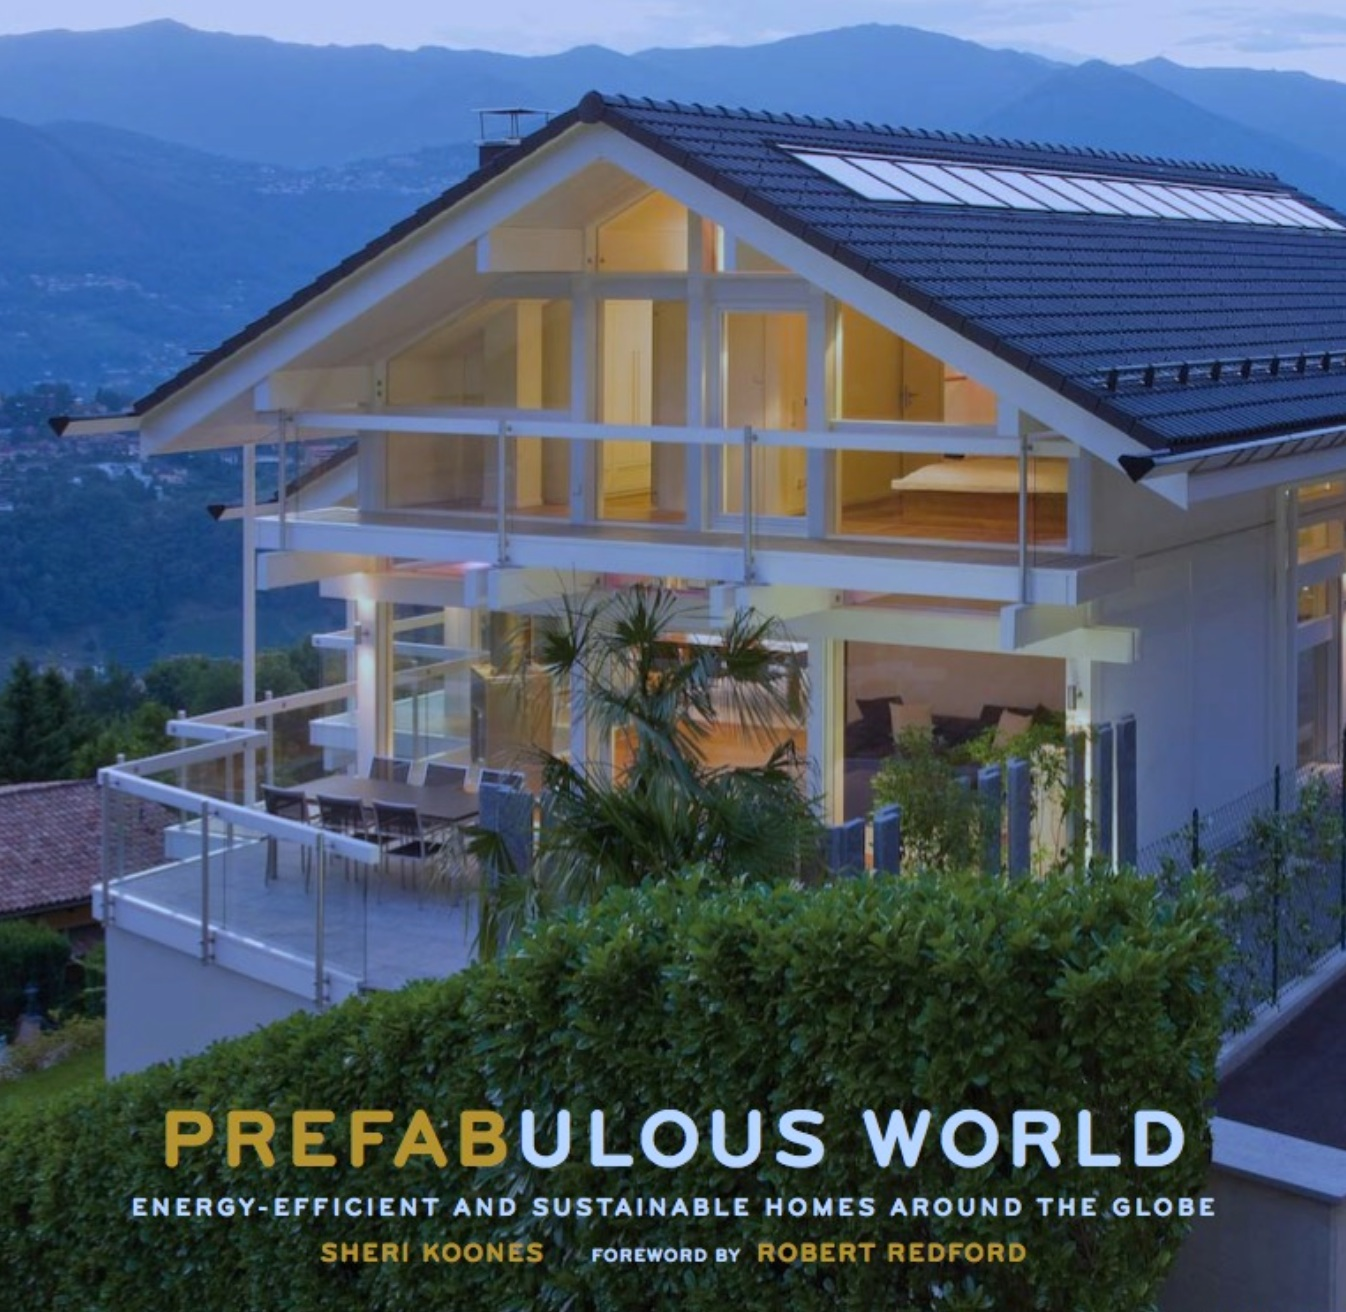 Prefabulous World by Sheri Koones